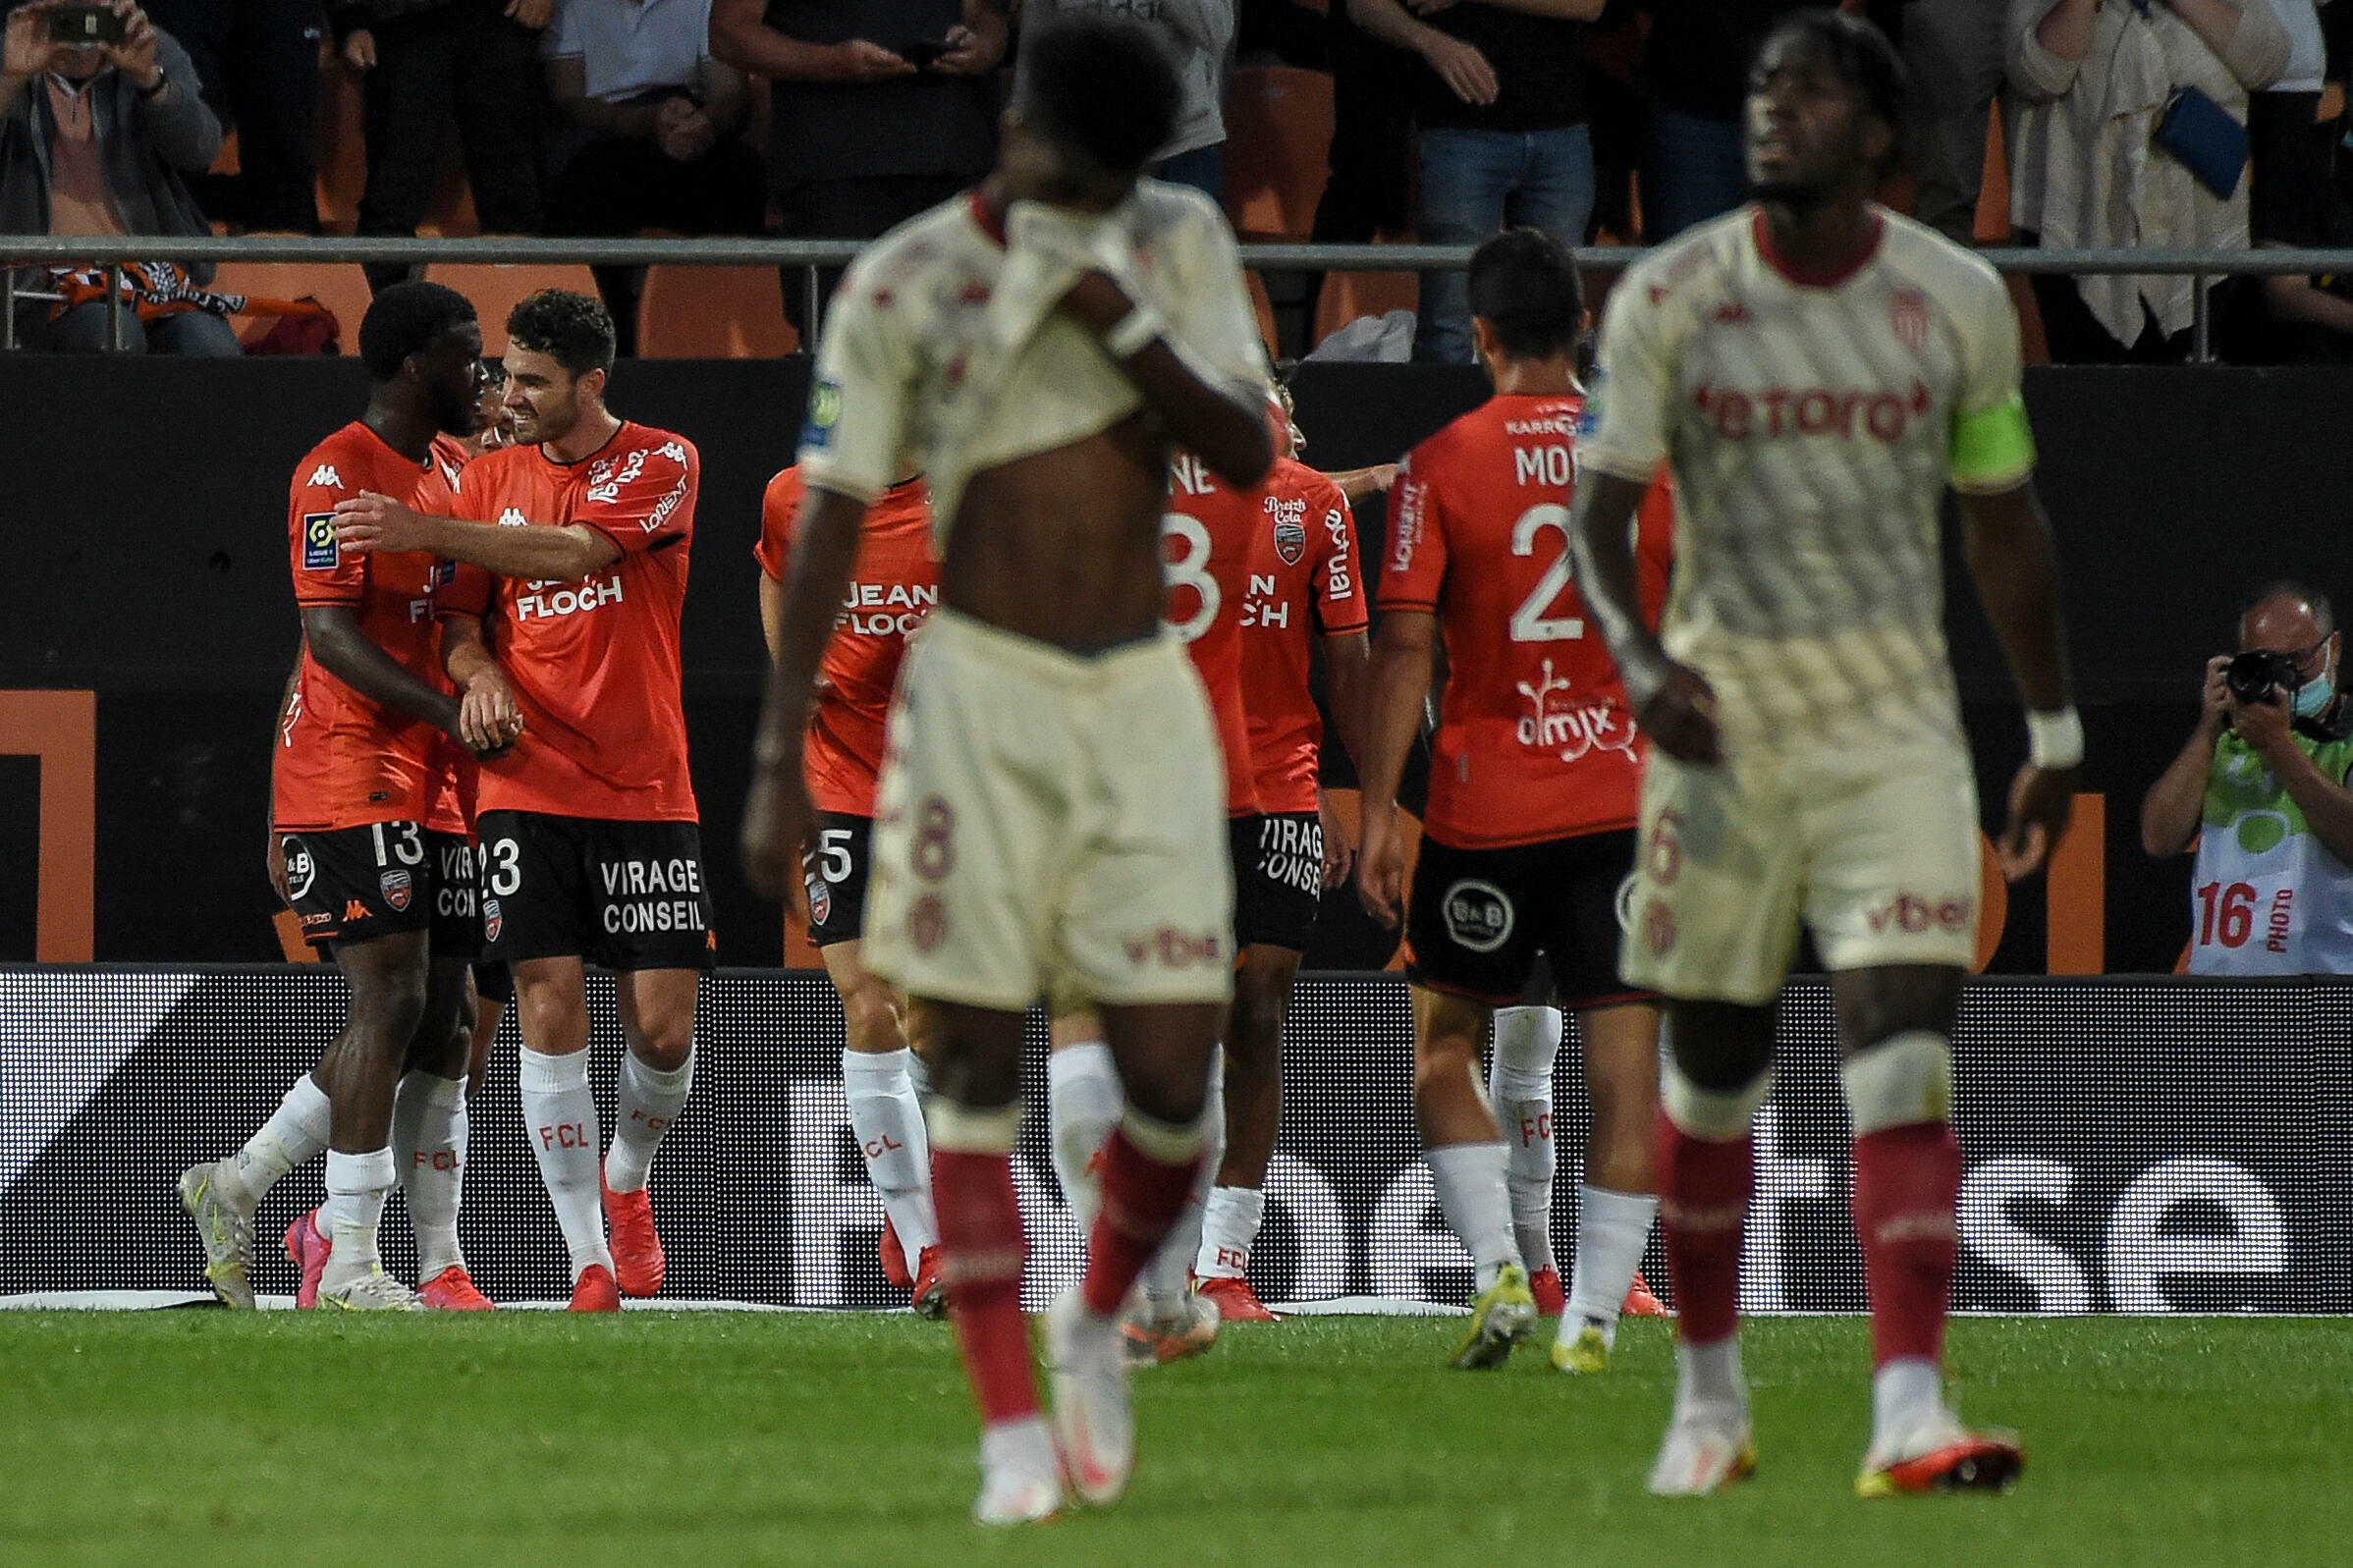 Lorientis was very realistic against Monaco on August 13, 2021 at Mostoyer Stadium.